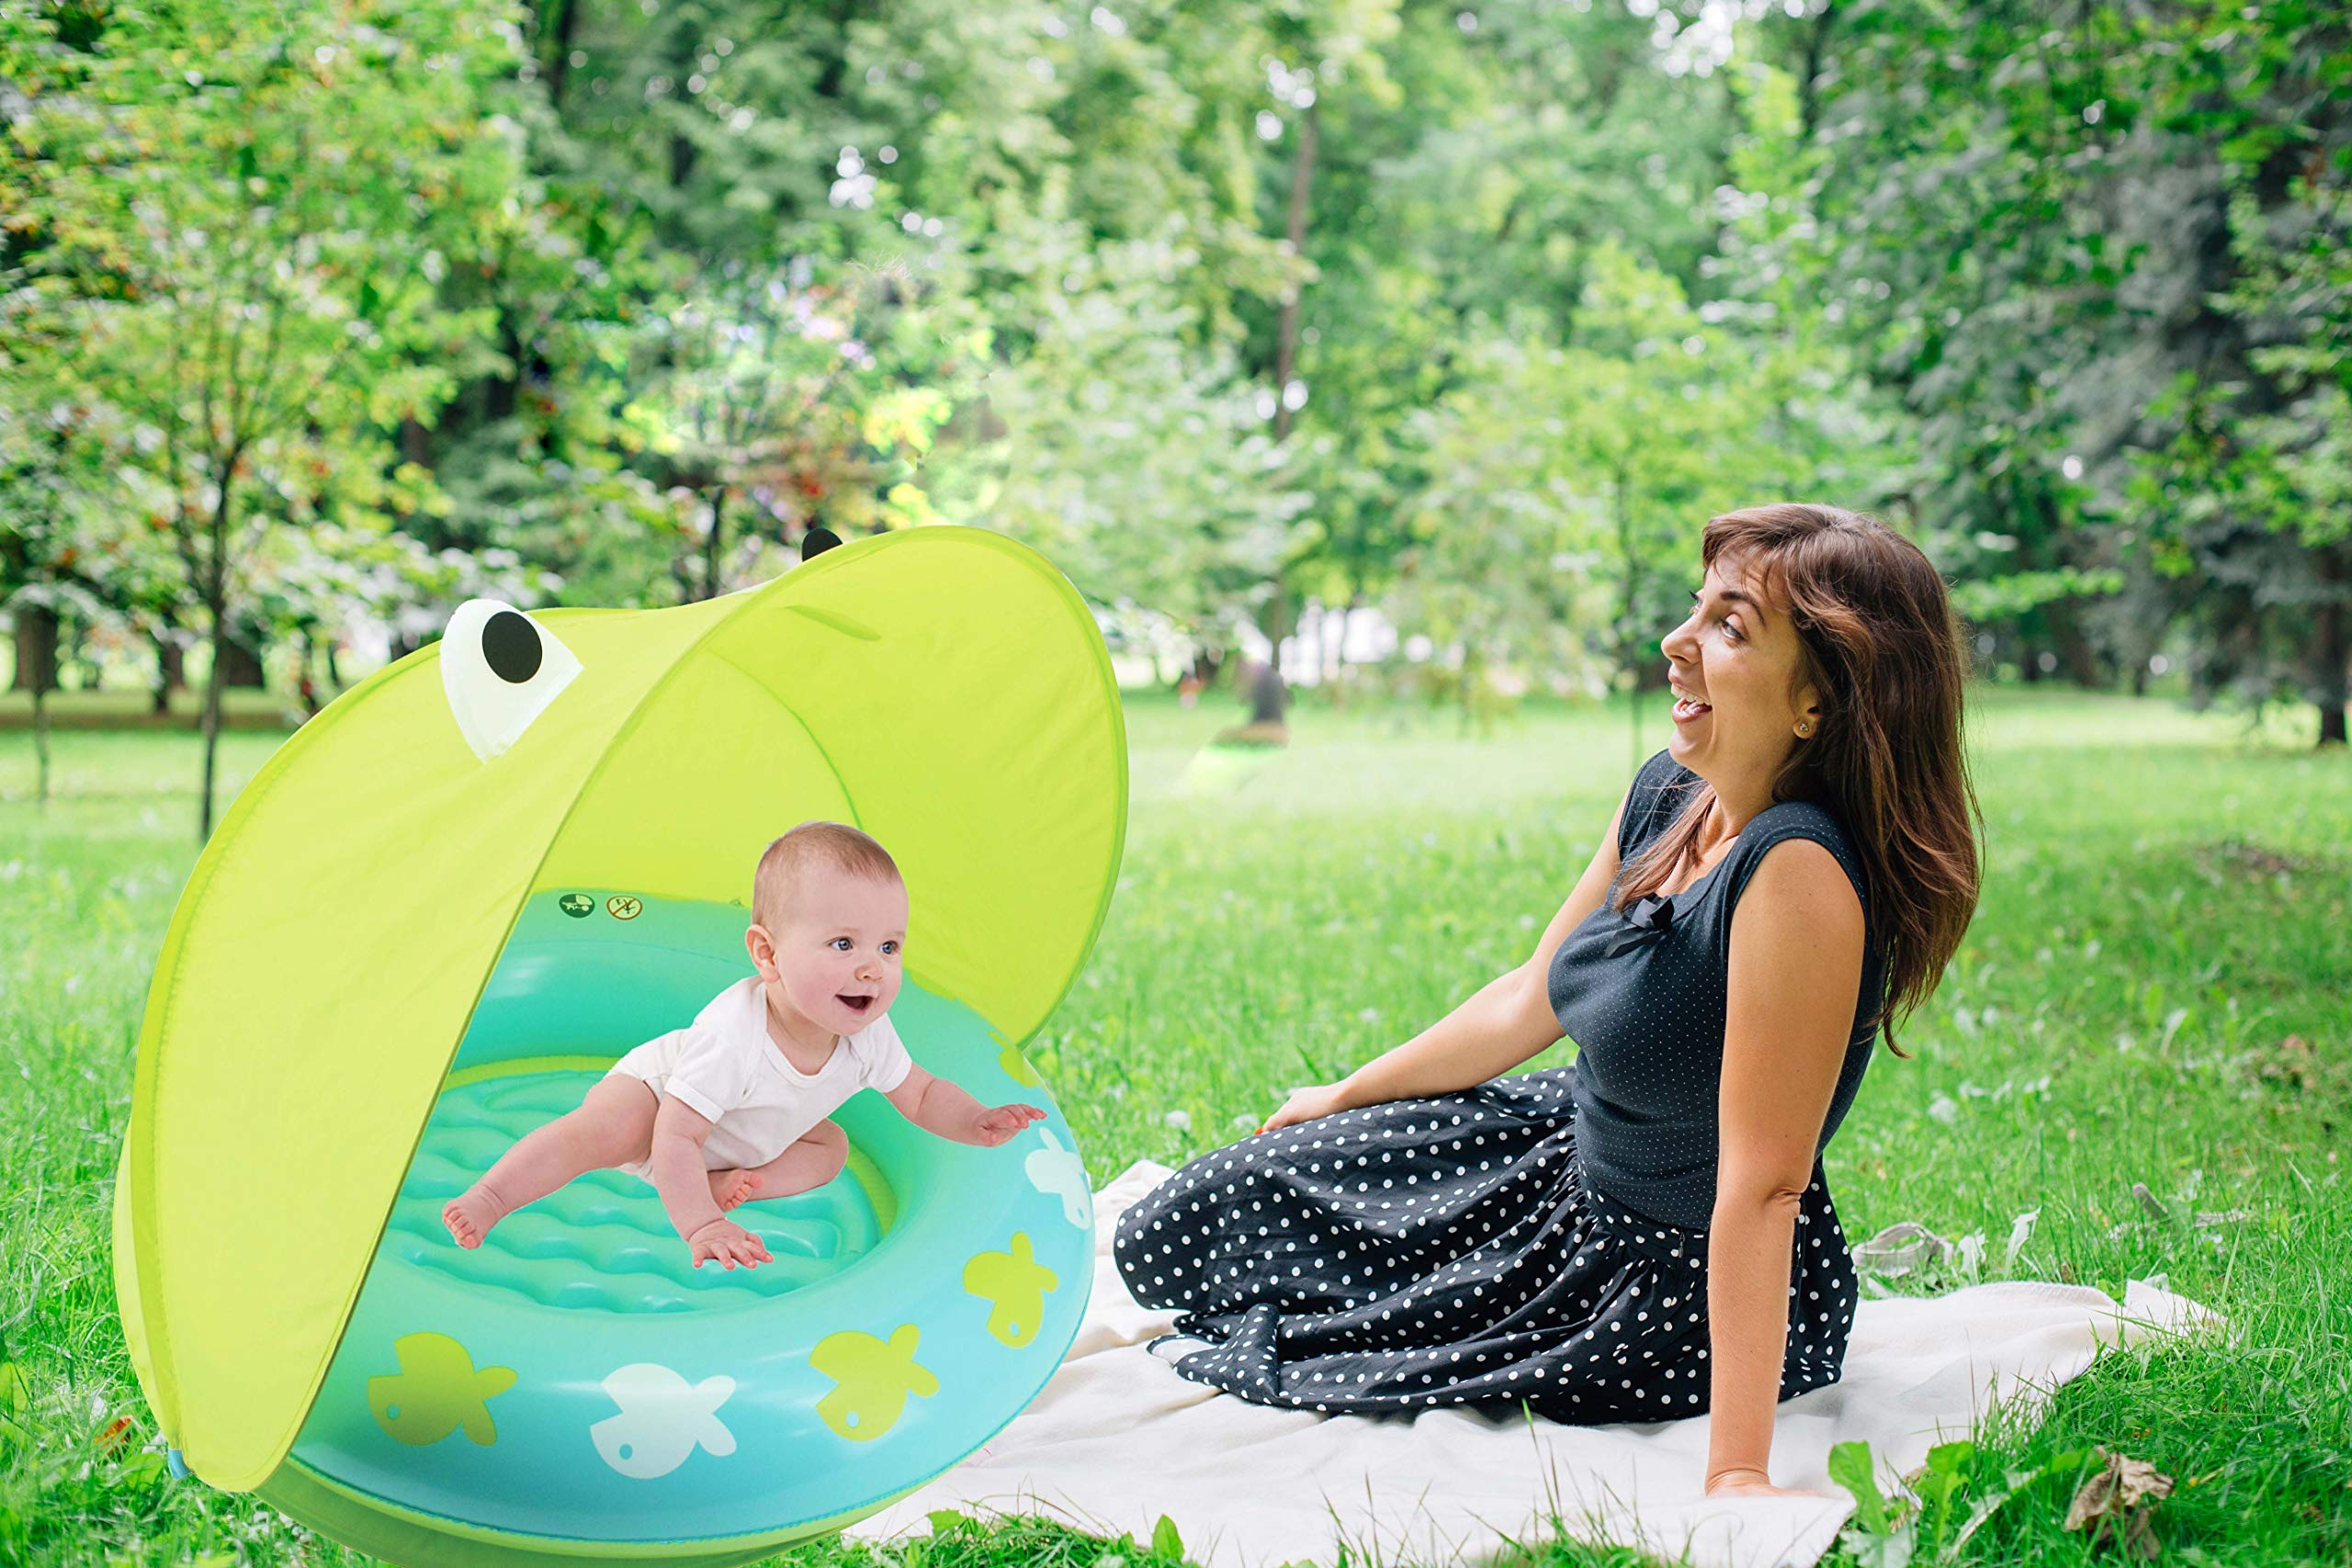 Hoovy Froggy Sun Protection Pool | Indoor & Outdoor Baby Play Gear | Toys for Newborn | Mini Swimming Accessories for Kids and Toddlers | Best Gift for Girls & Boys | Portable & Compact Swim Items by Hoovy